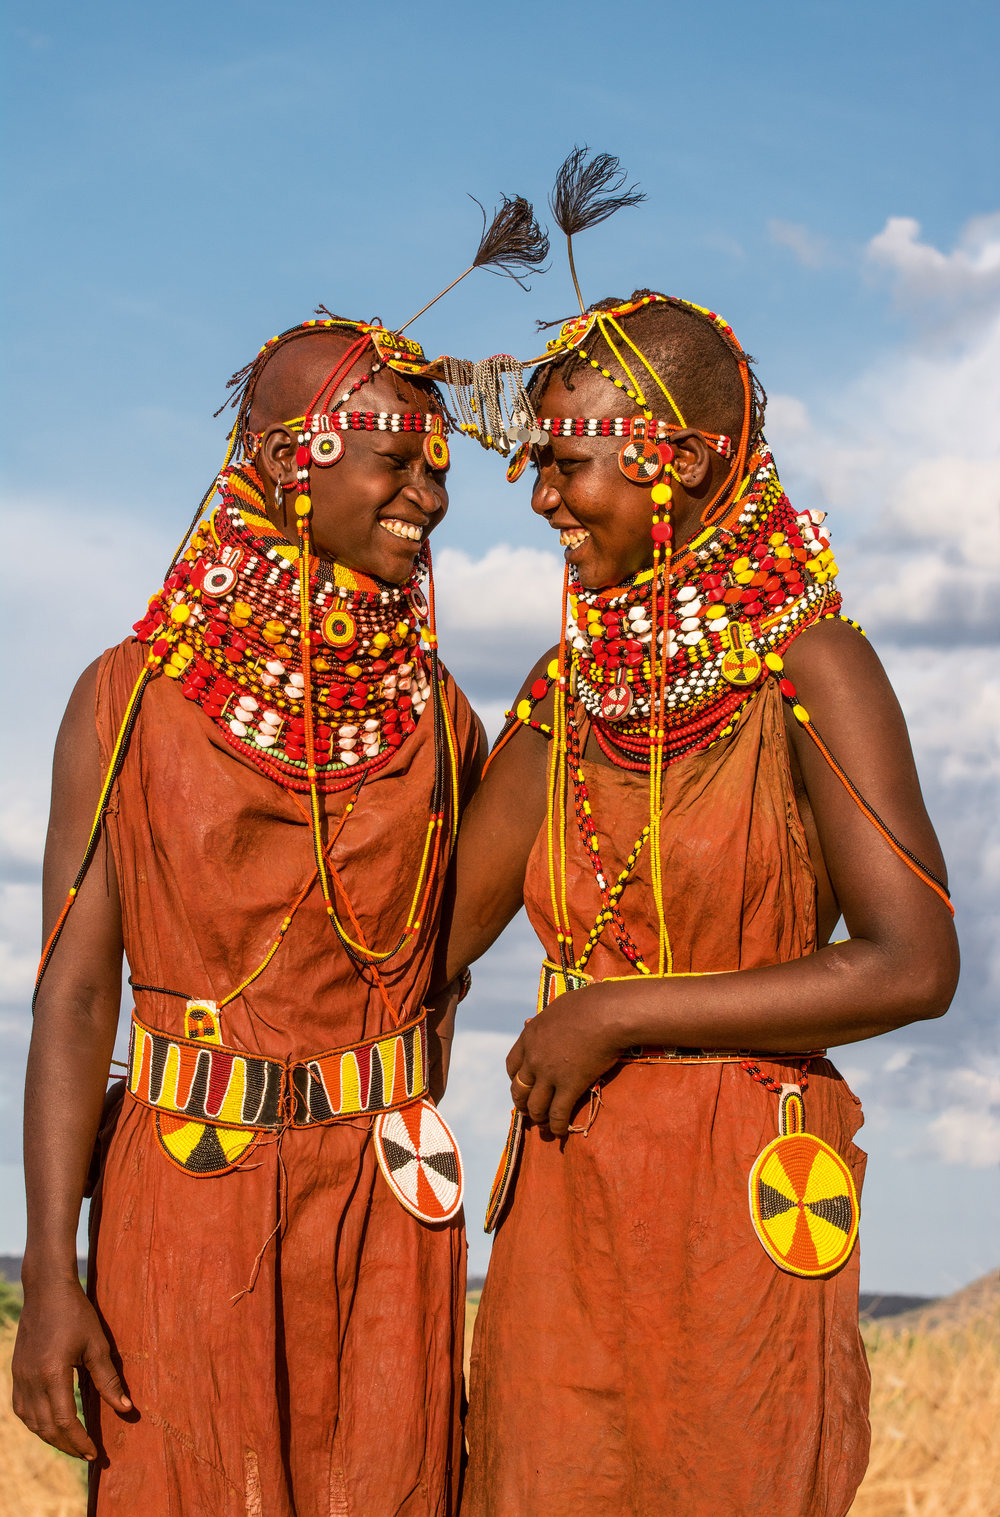 Unmarried girls wear brightly beaded necklaces, belts, and medallions. They often wear more vibrant colors than married women to attract the eye of potential husbands during the courtship dance. © African Twilight: The Vanishing Cultures and Ceremonies of the African Continent by Carol Beckwith and Angela Fisher, Rizzoli, 2018.